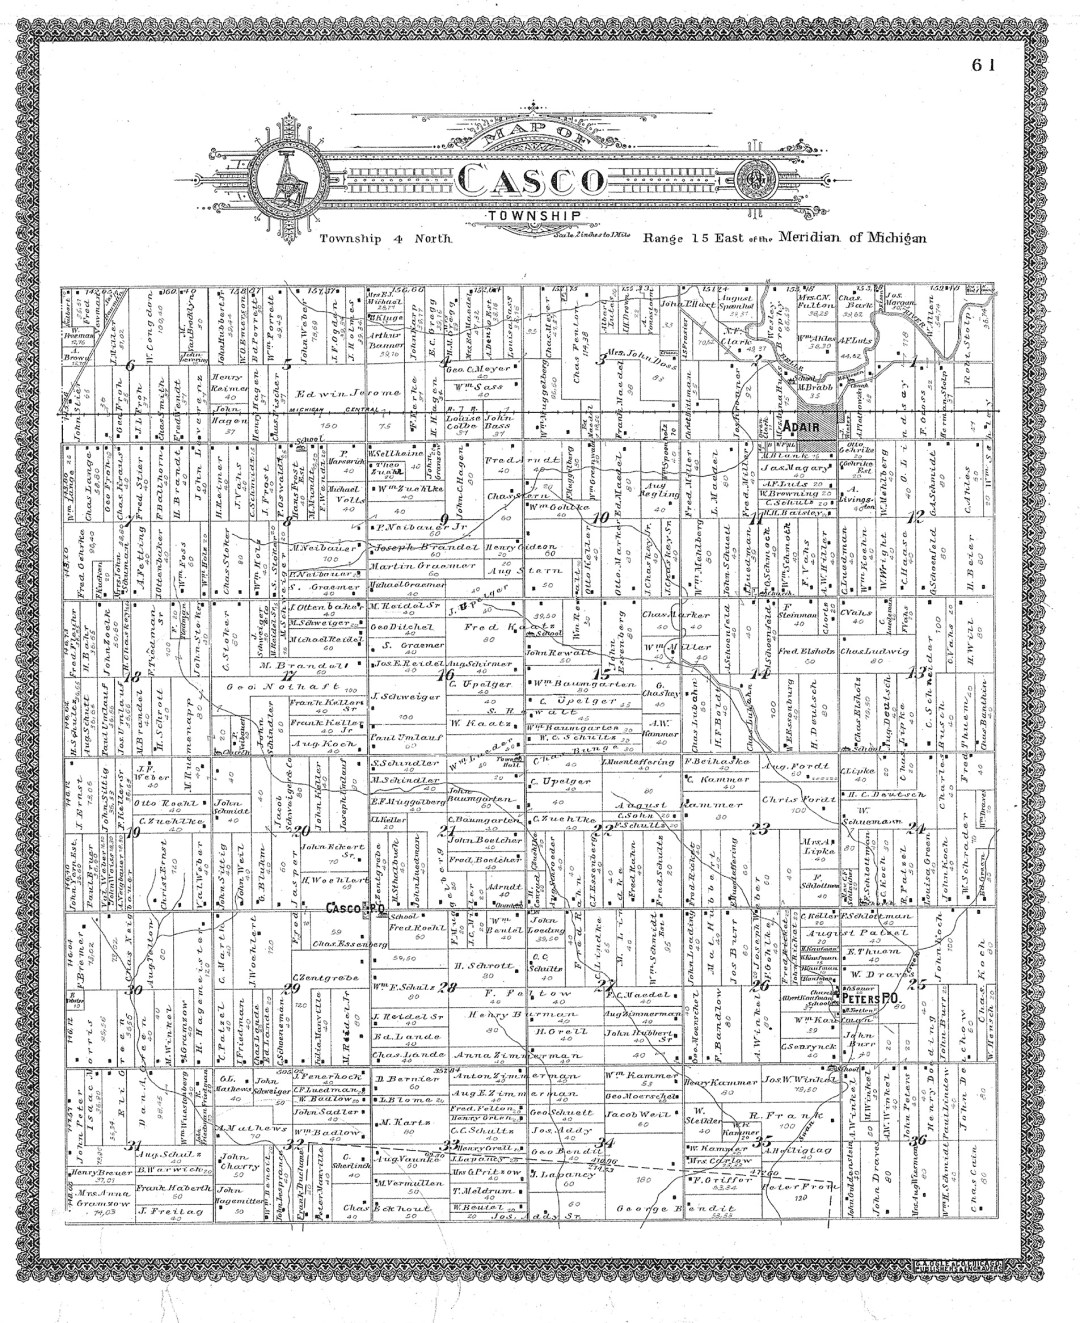 1897 Atlas of Casco Township, Michigan